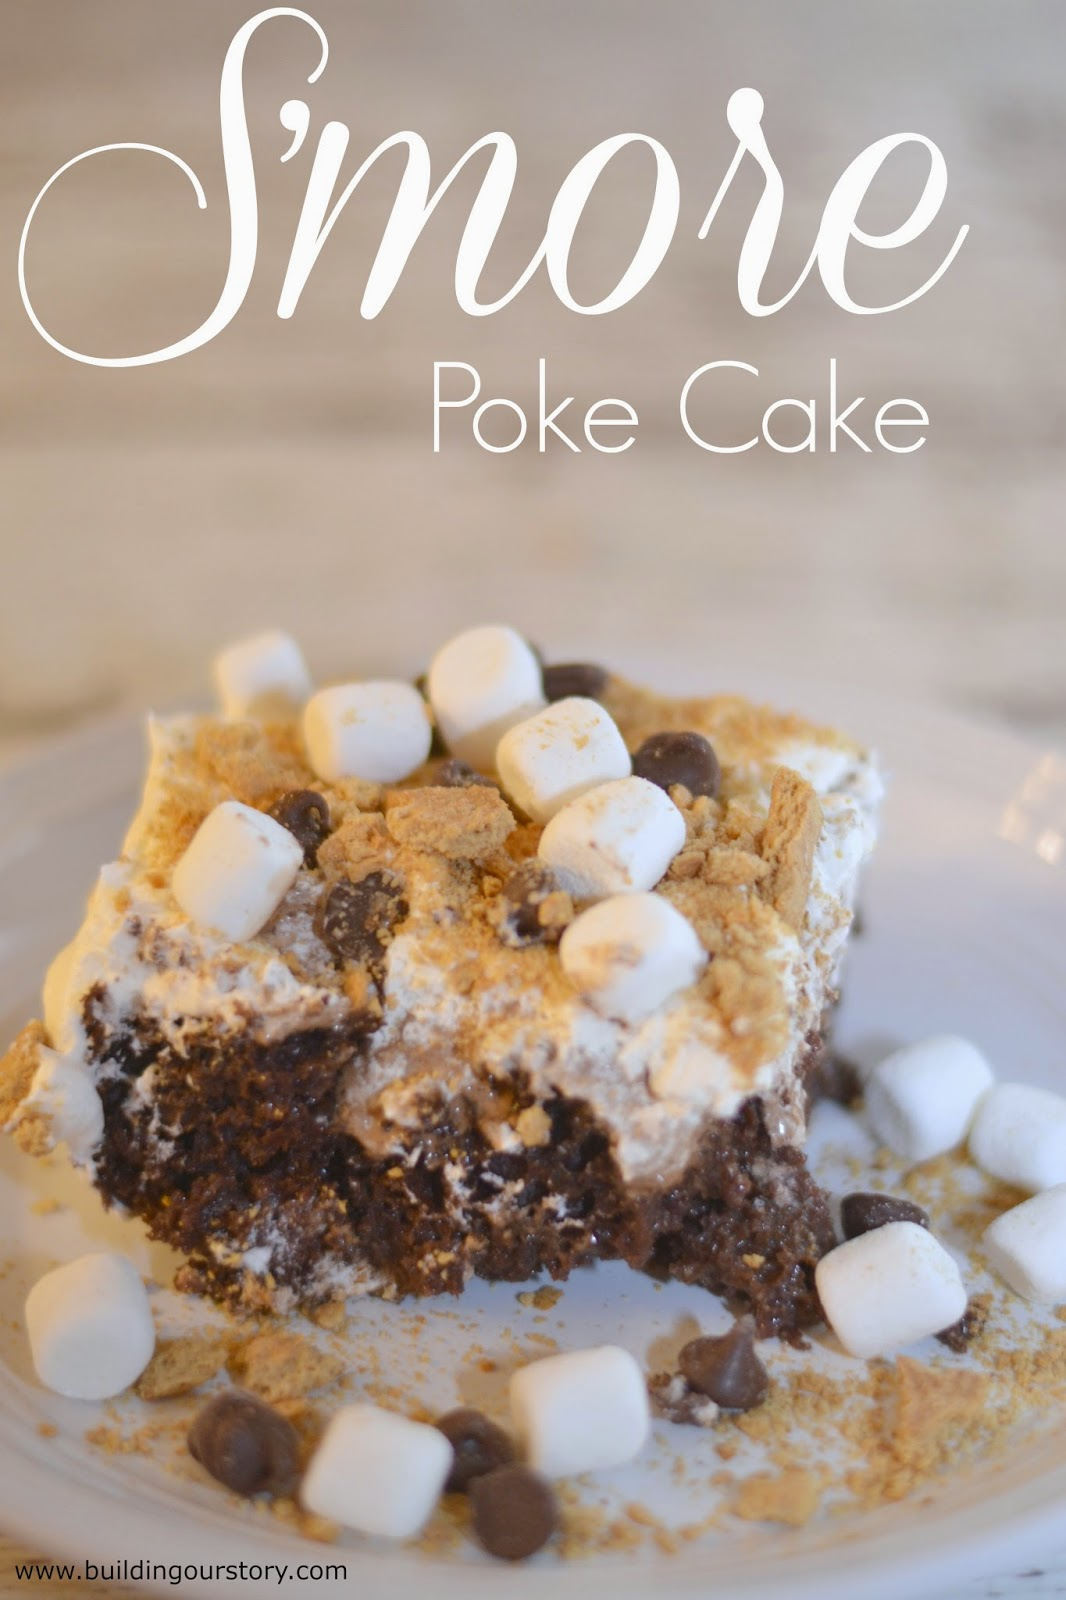 TruMoo Chocolate Marshmallow S'more Poke Cake #Recipe.  S'mores Poke Cake.  Smores cake.  Baking with milk.  Chocolate milk cake.  S'mores desserts.  Smores Desserts.  Poke cake recipes.  Smores poke cake recipe.